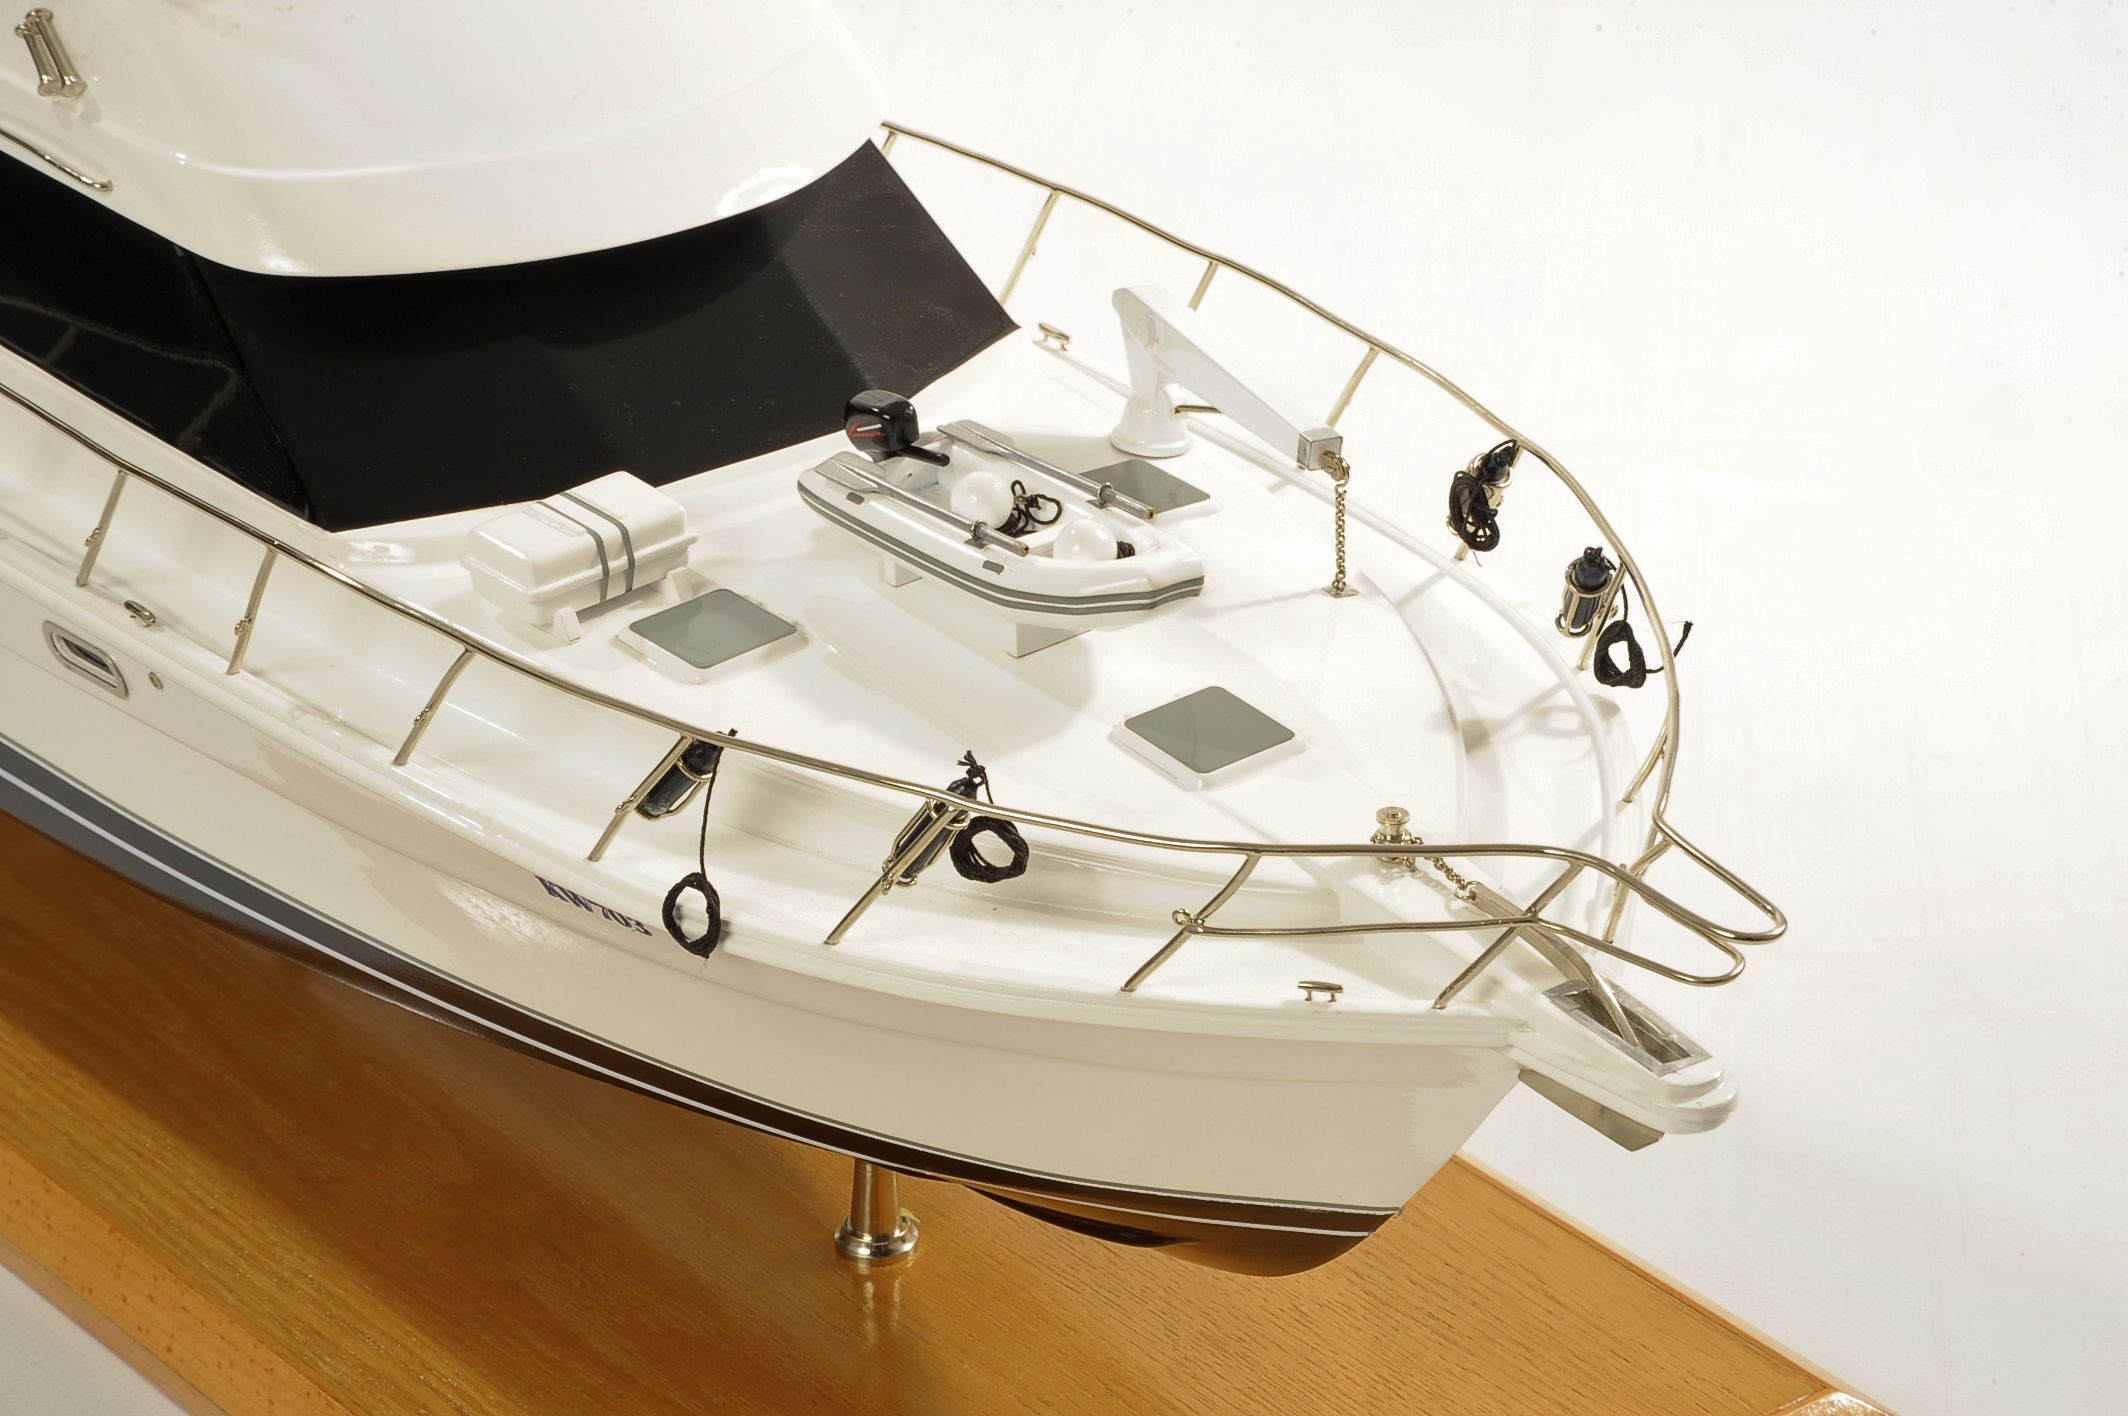 1517-8955-Rivera-45-Model-Boat-Time-Out-2